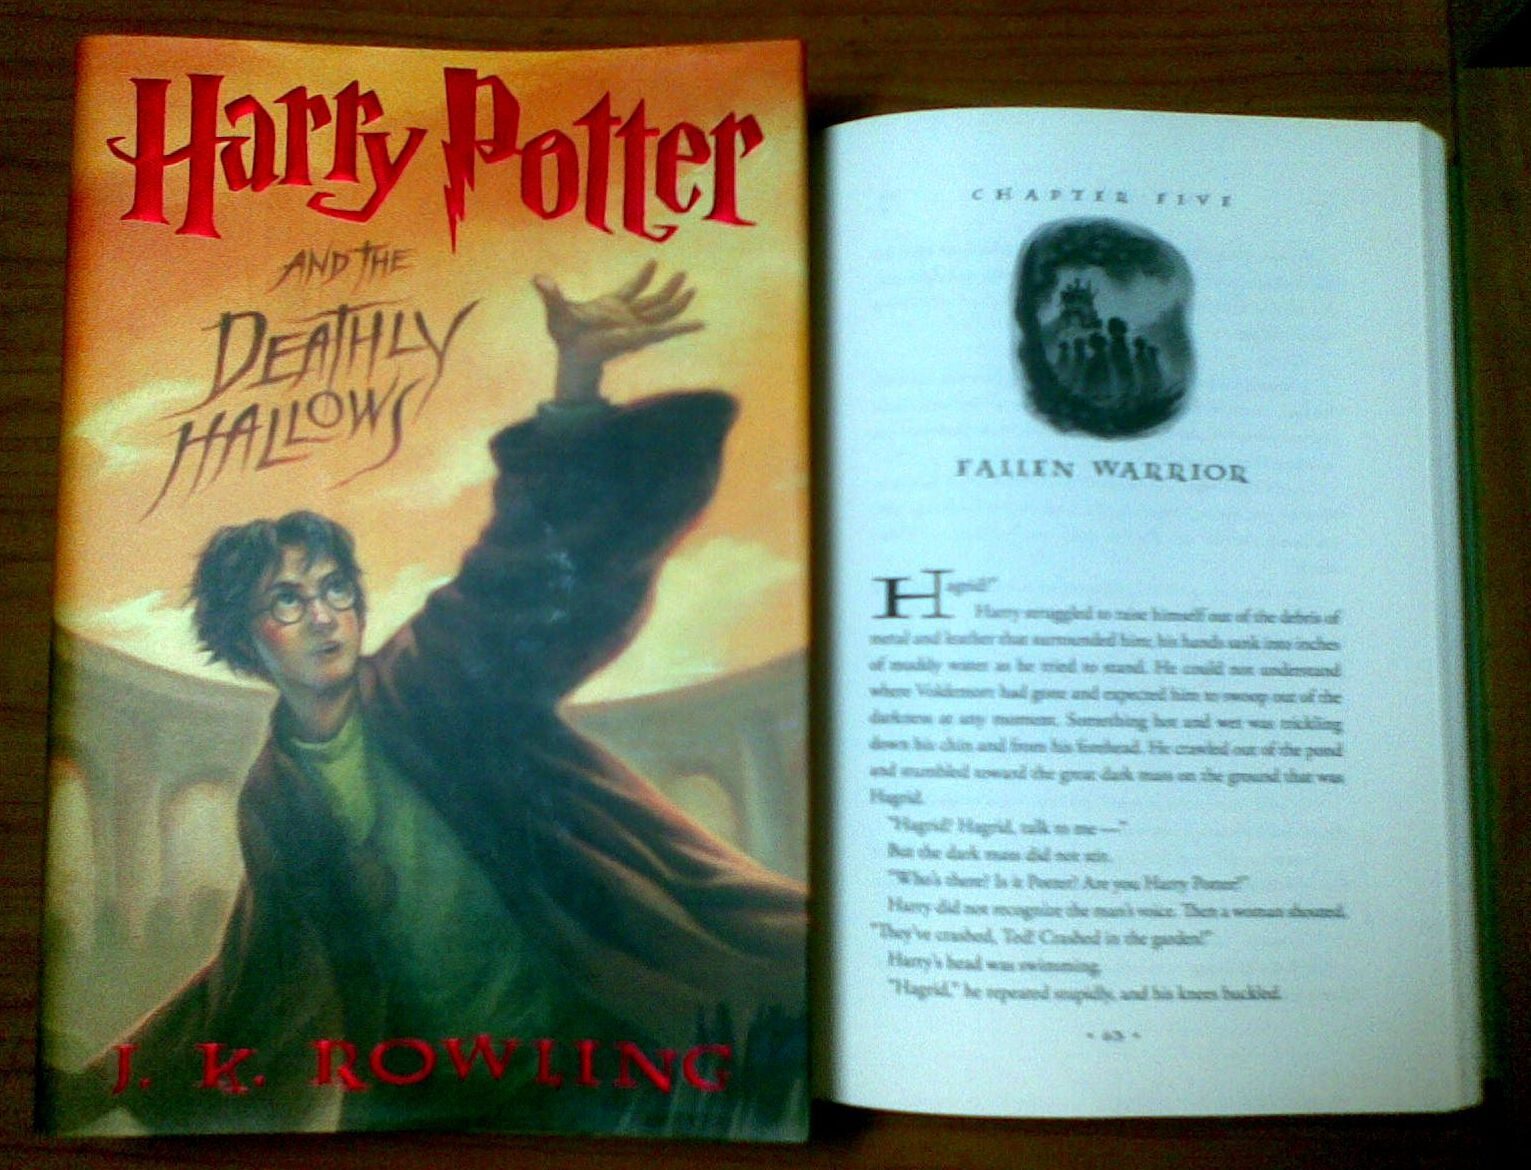 Harry Potter Book 2 Pdf